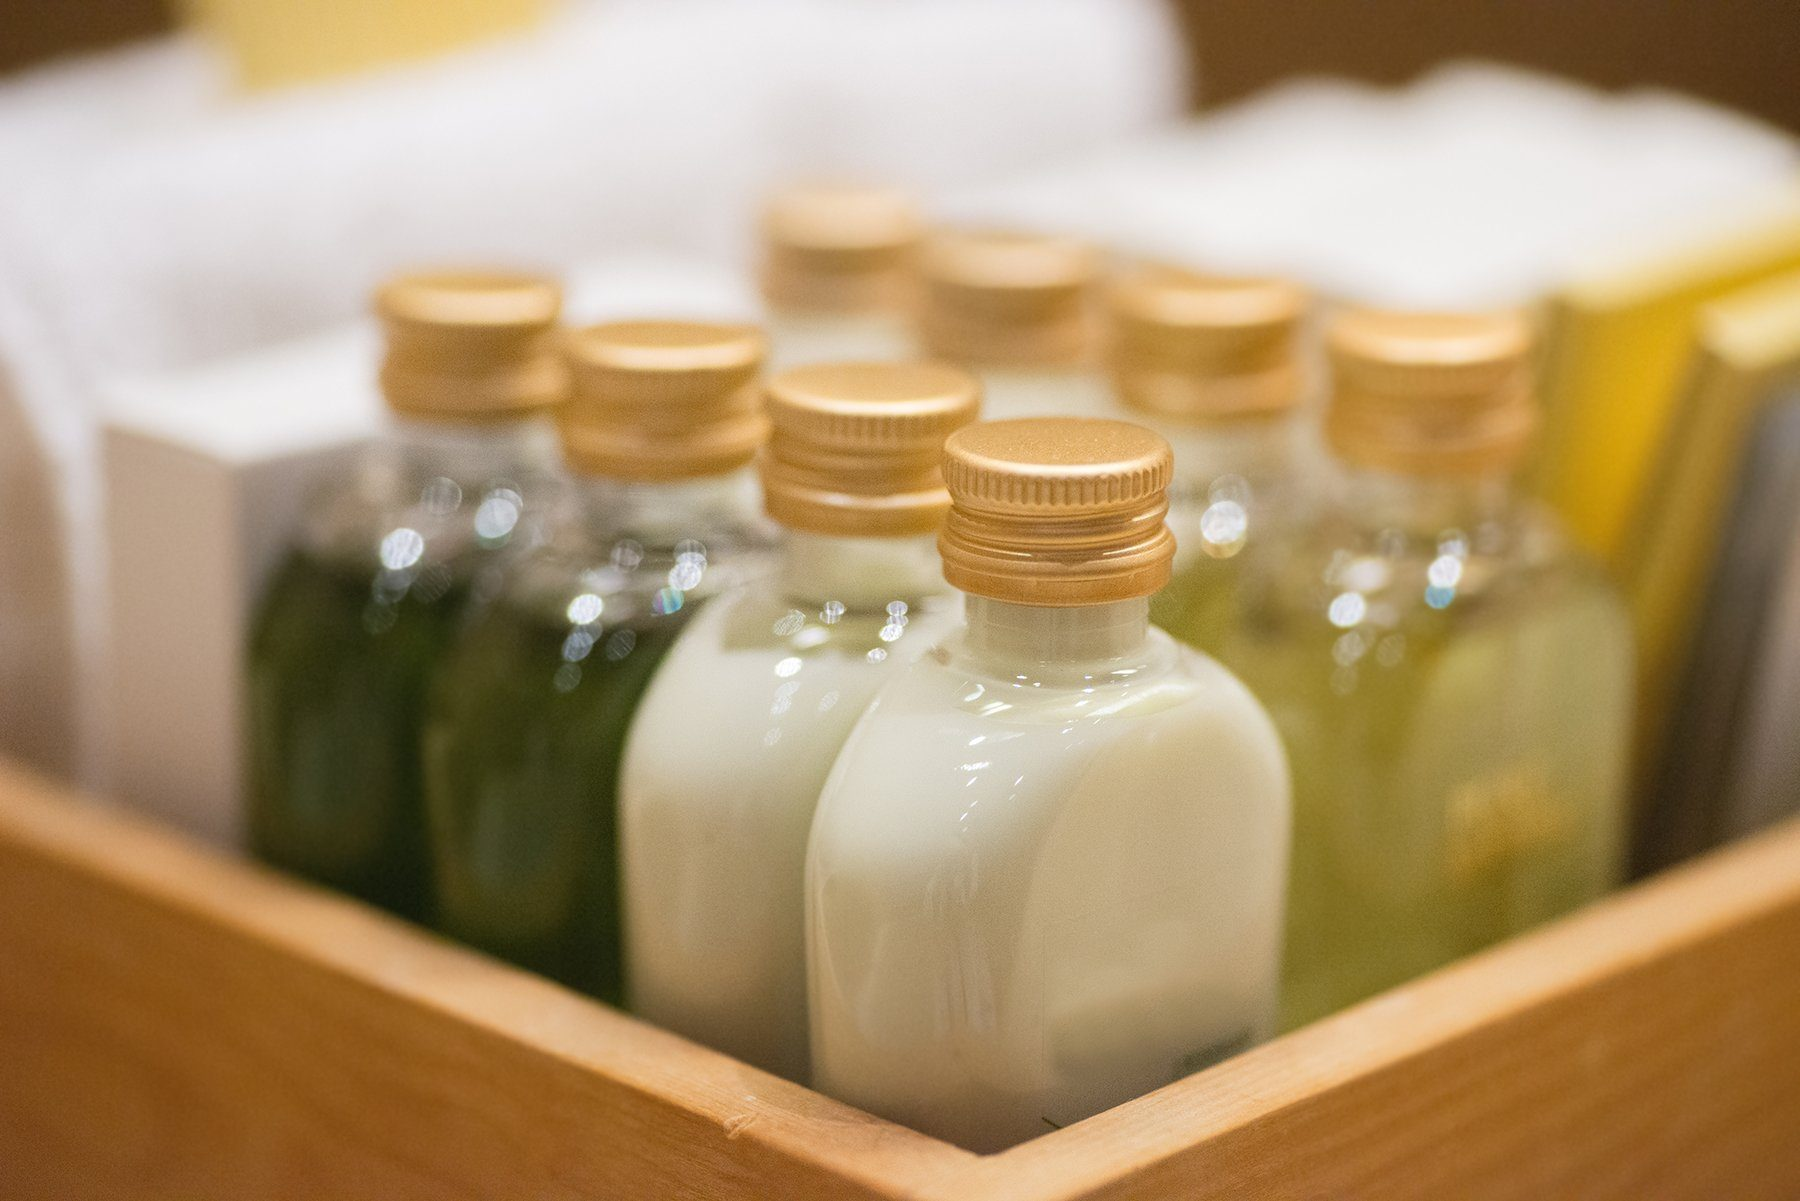 small shampoo bottles in wodden basket in hotel room